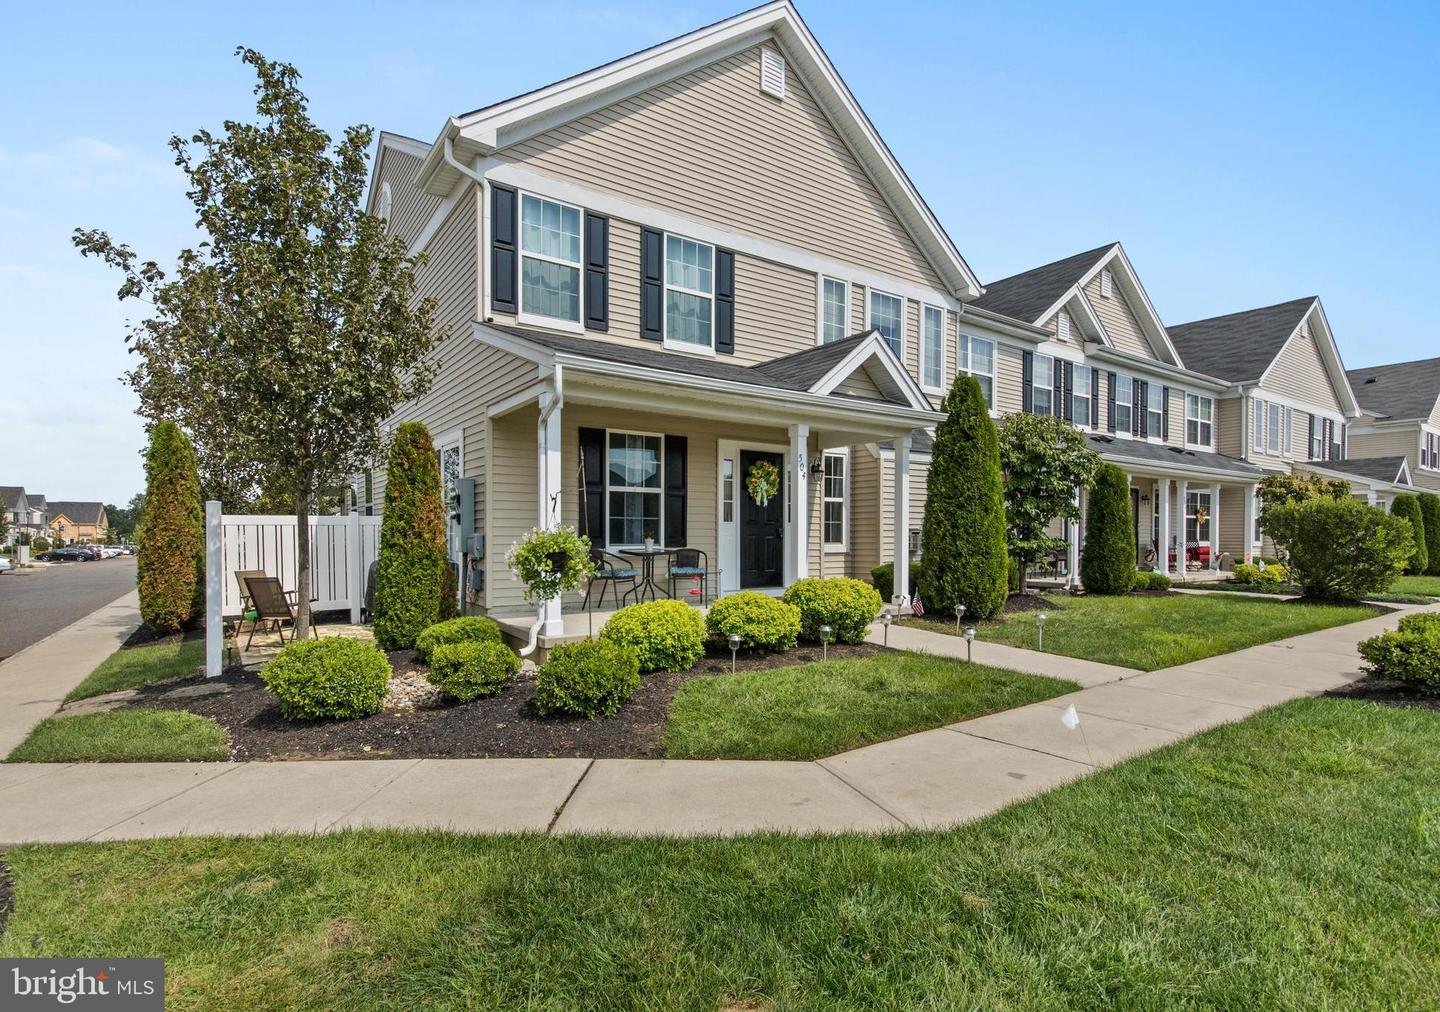 Photo of home for sale at 504 Lexington Mews, Woolwich Twp NJ